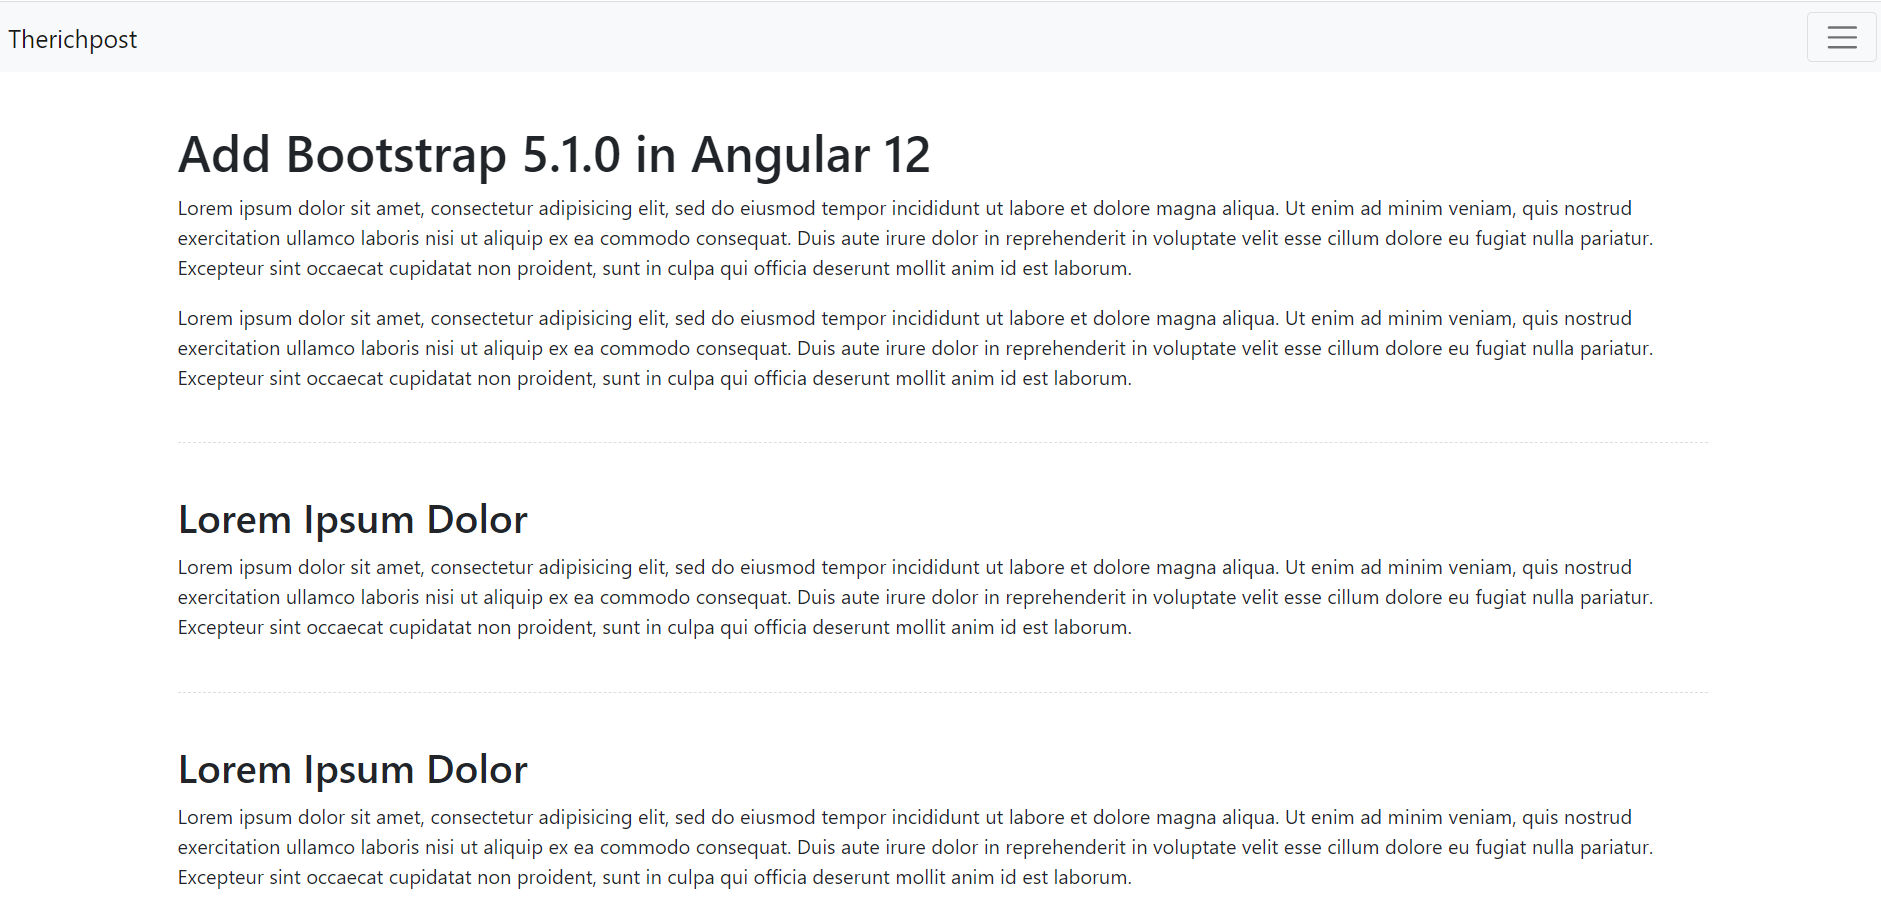 How to add Bootstrap 5.1.0 in Angular 12?